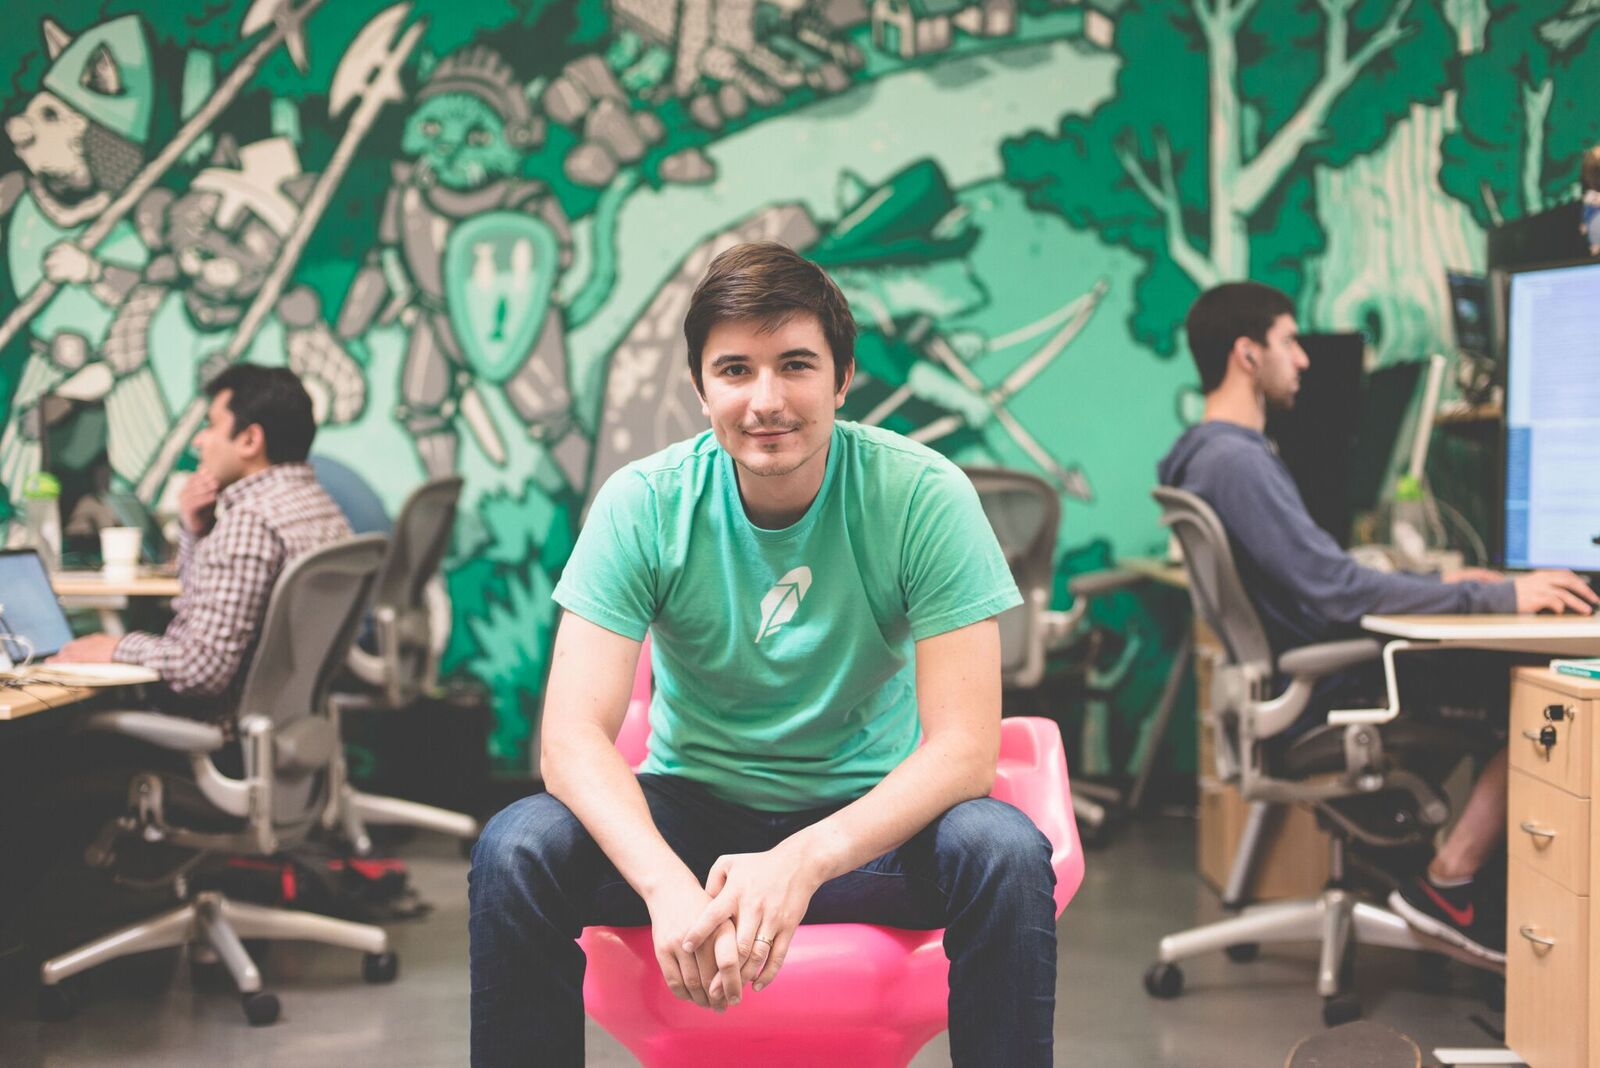 Robinhood Raises $363M in Fresh Funding Round, Closing In On Rival E